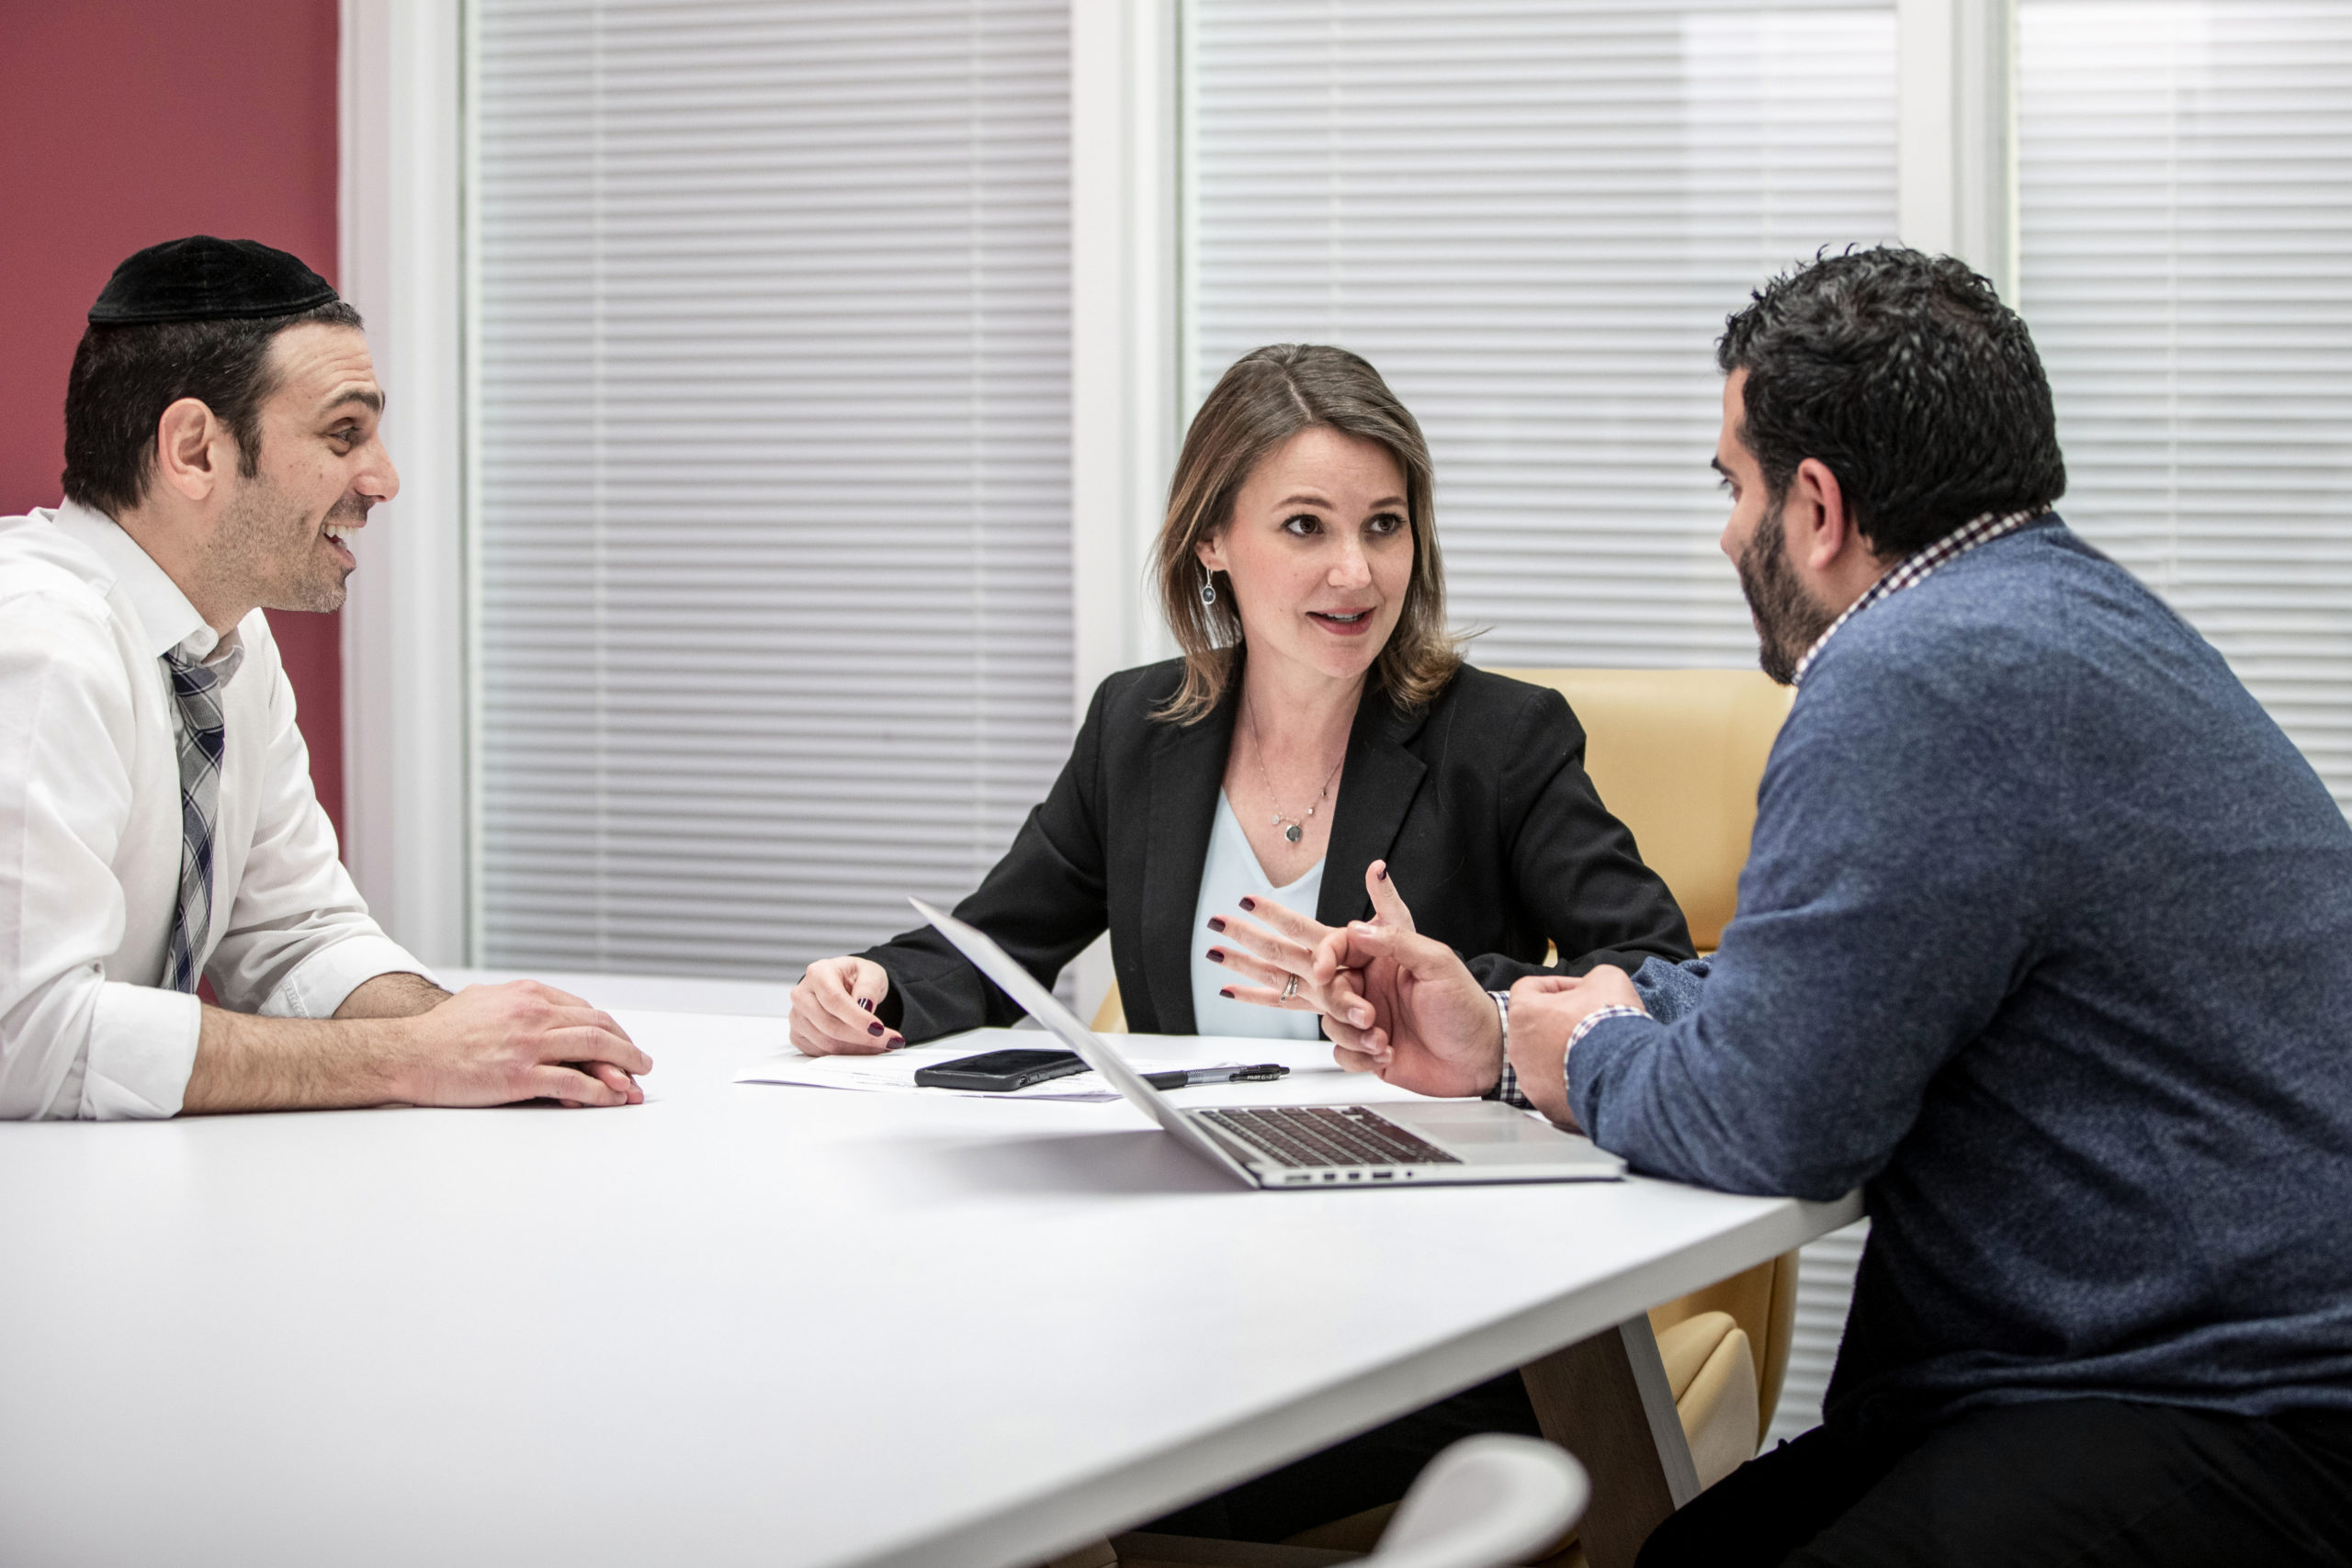 A woman talks to her colleagues in the boardroom